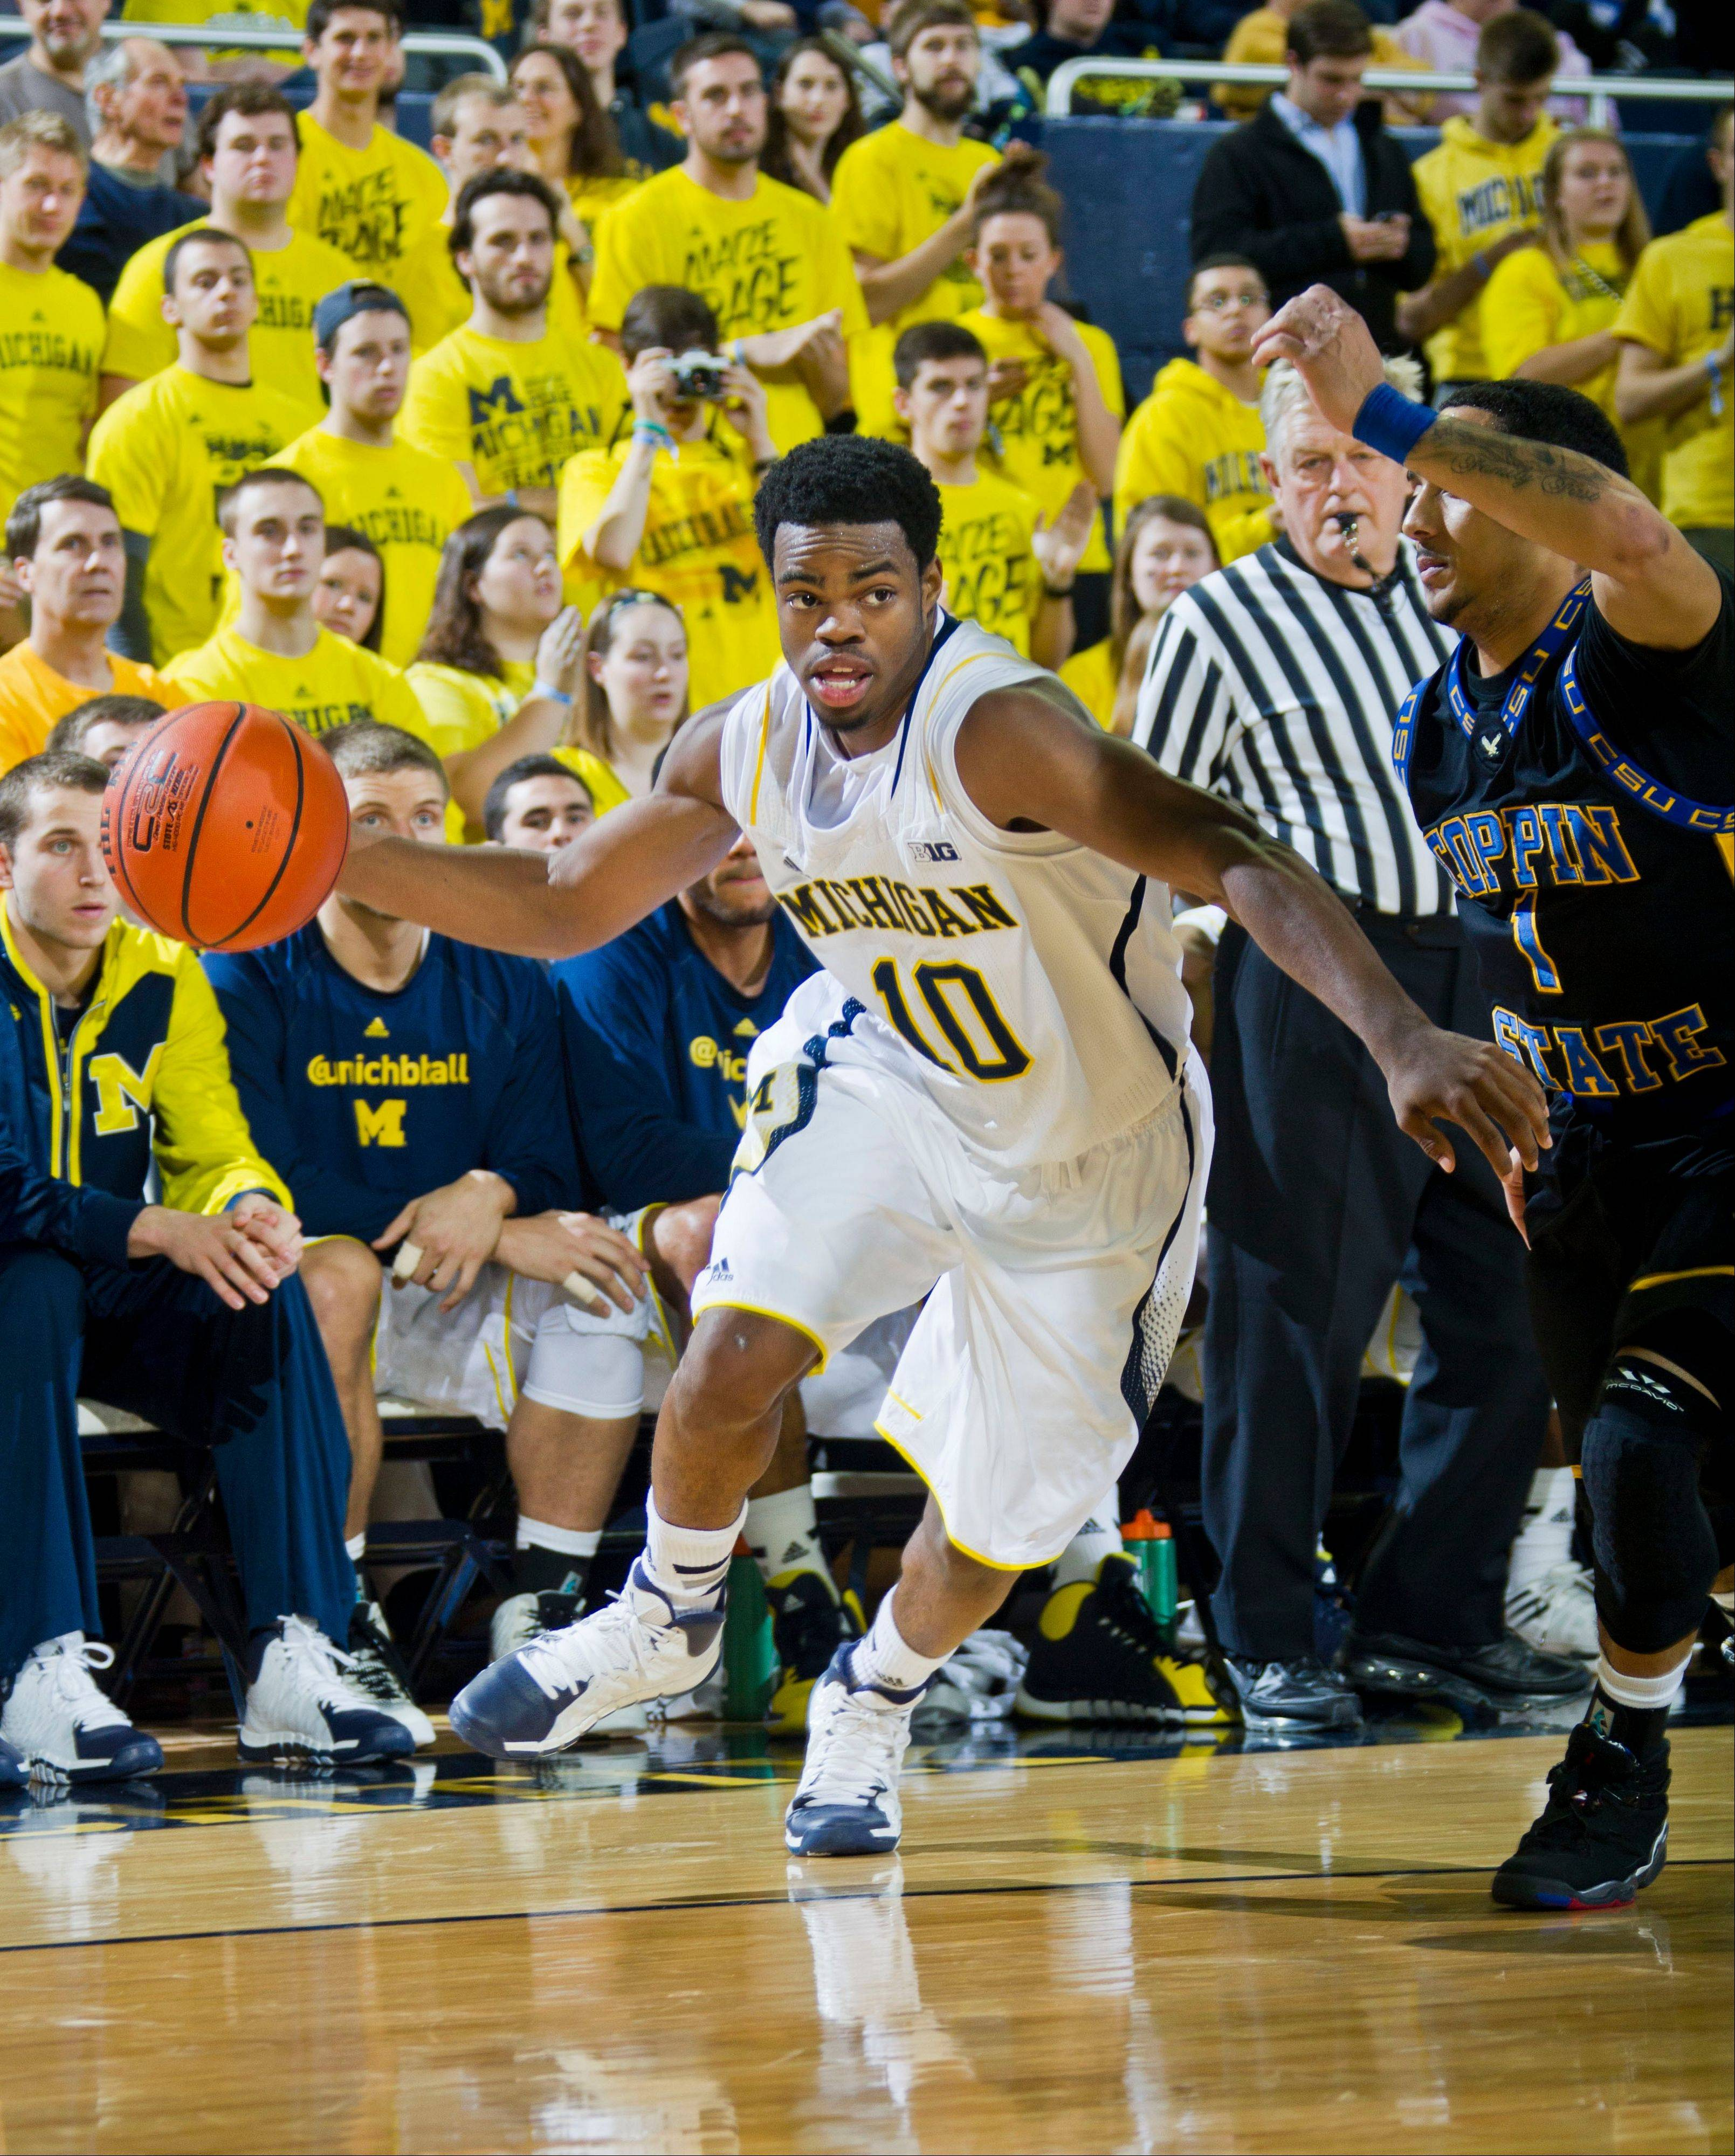 Michigan guard Derrick Walton Jr. dribbles up court against Coppin State guard Daquan Brickhouse, right, during the second half of Friday�s game at Crisler Center in Ann Arbor, Mich.